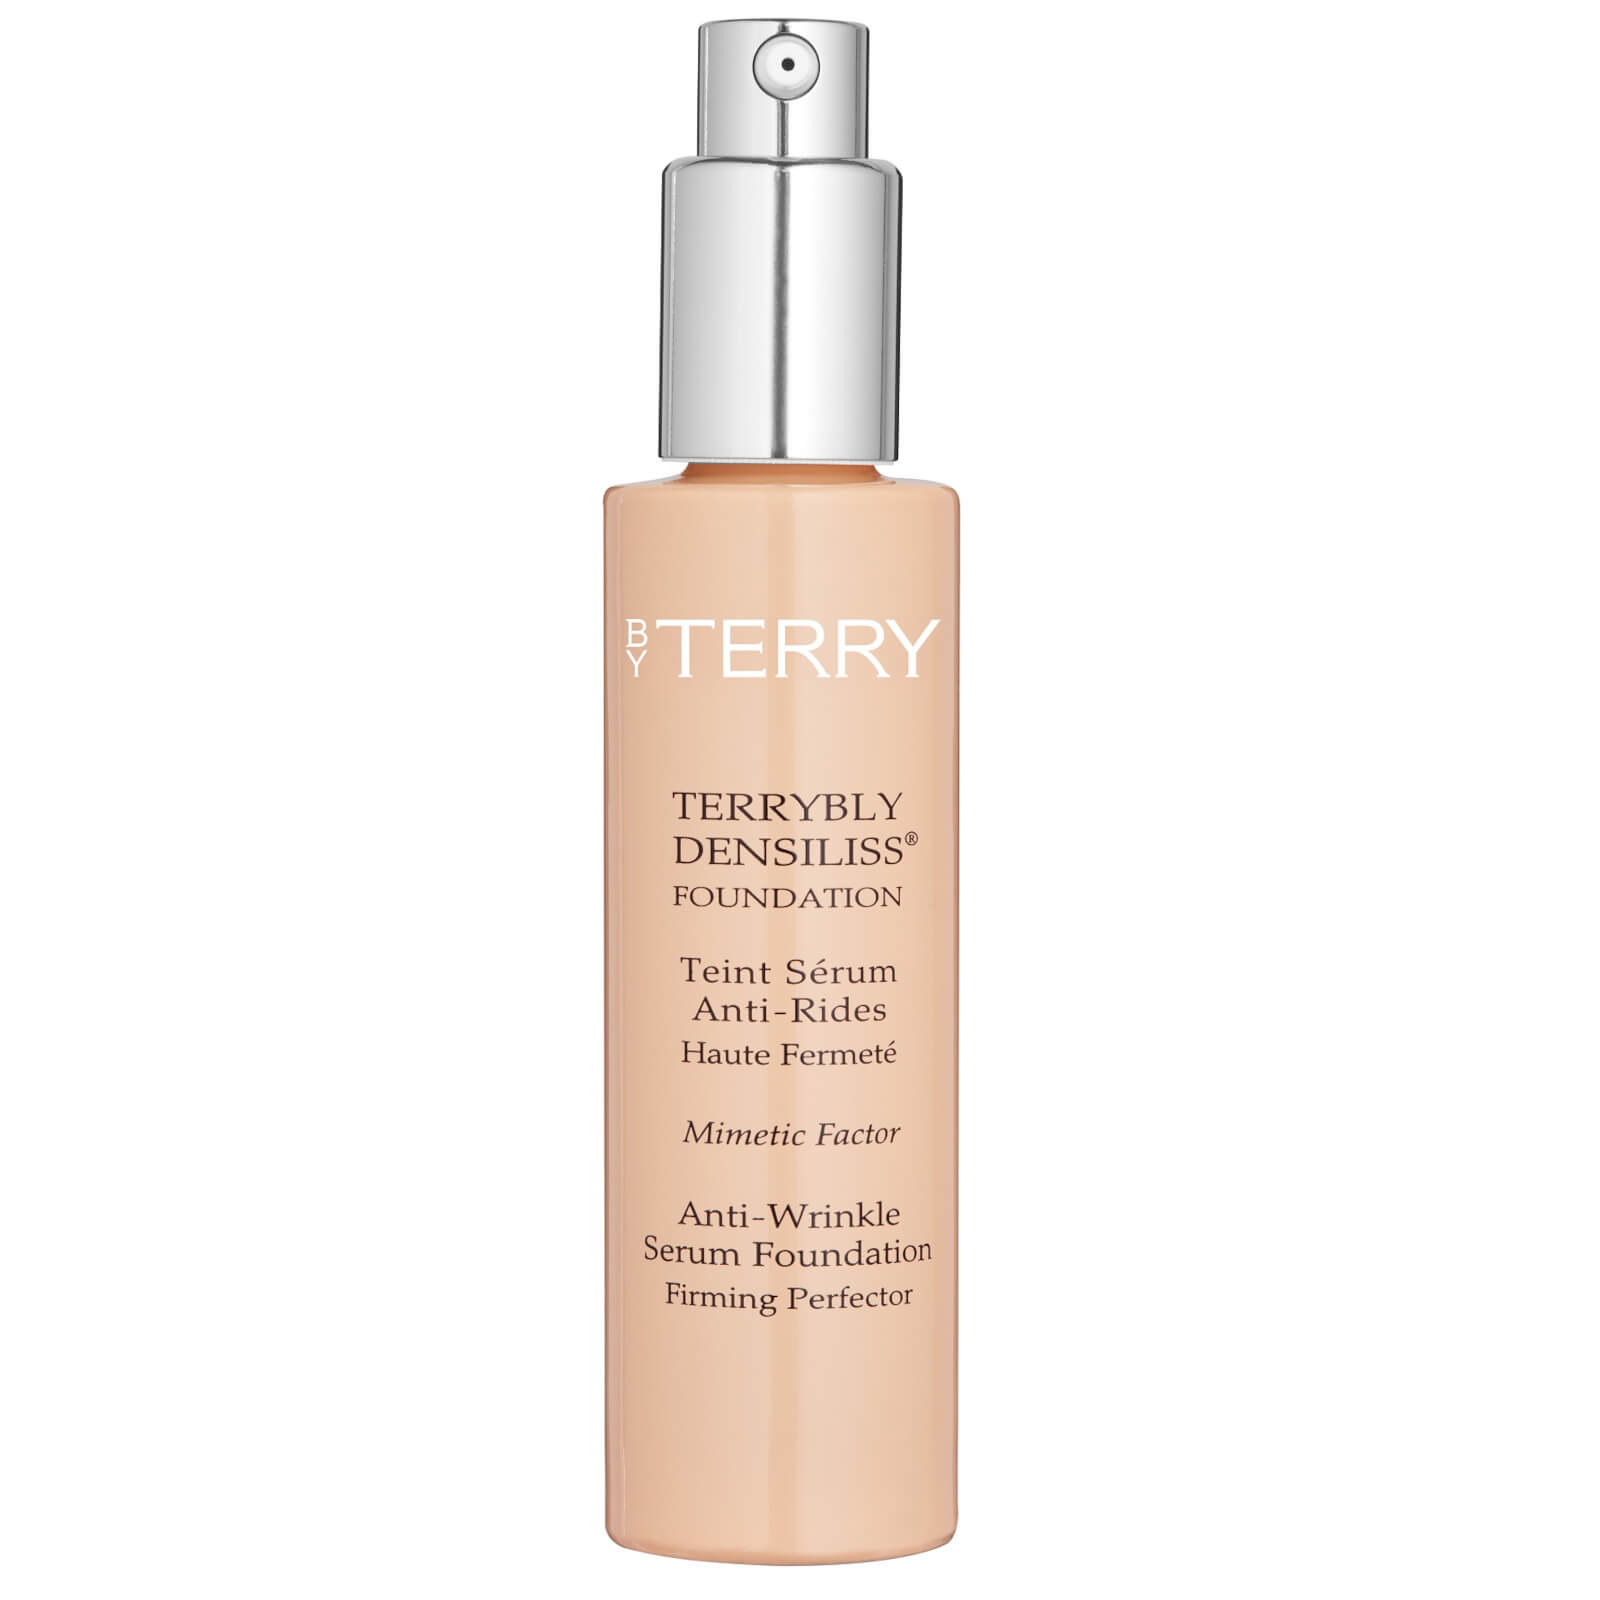 By Terry Terrybly Densiliss Foundation 30ml (Various Shades) - 6. Light Amber